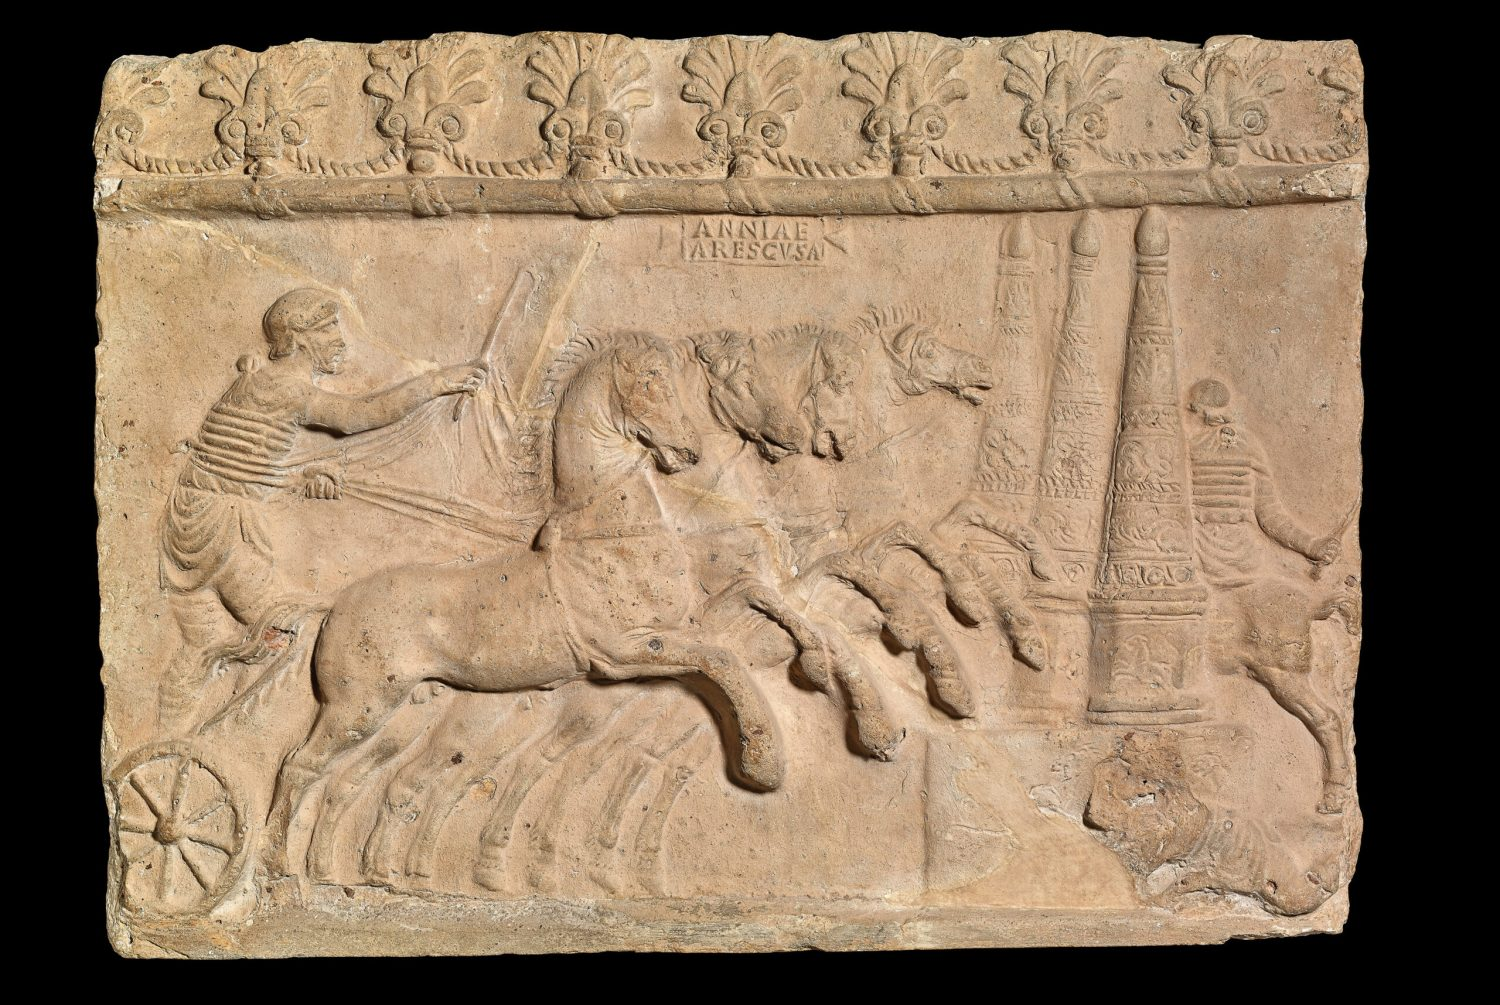 left Relief showing a chariot race, Italy. Terracotta, AD 40-70. Size: 30.5 x 40.6 x 3.5cm